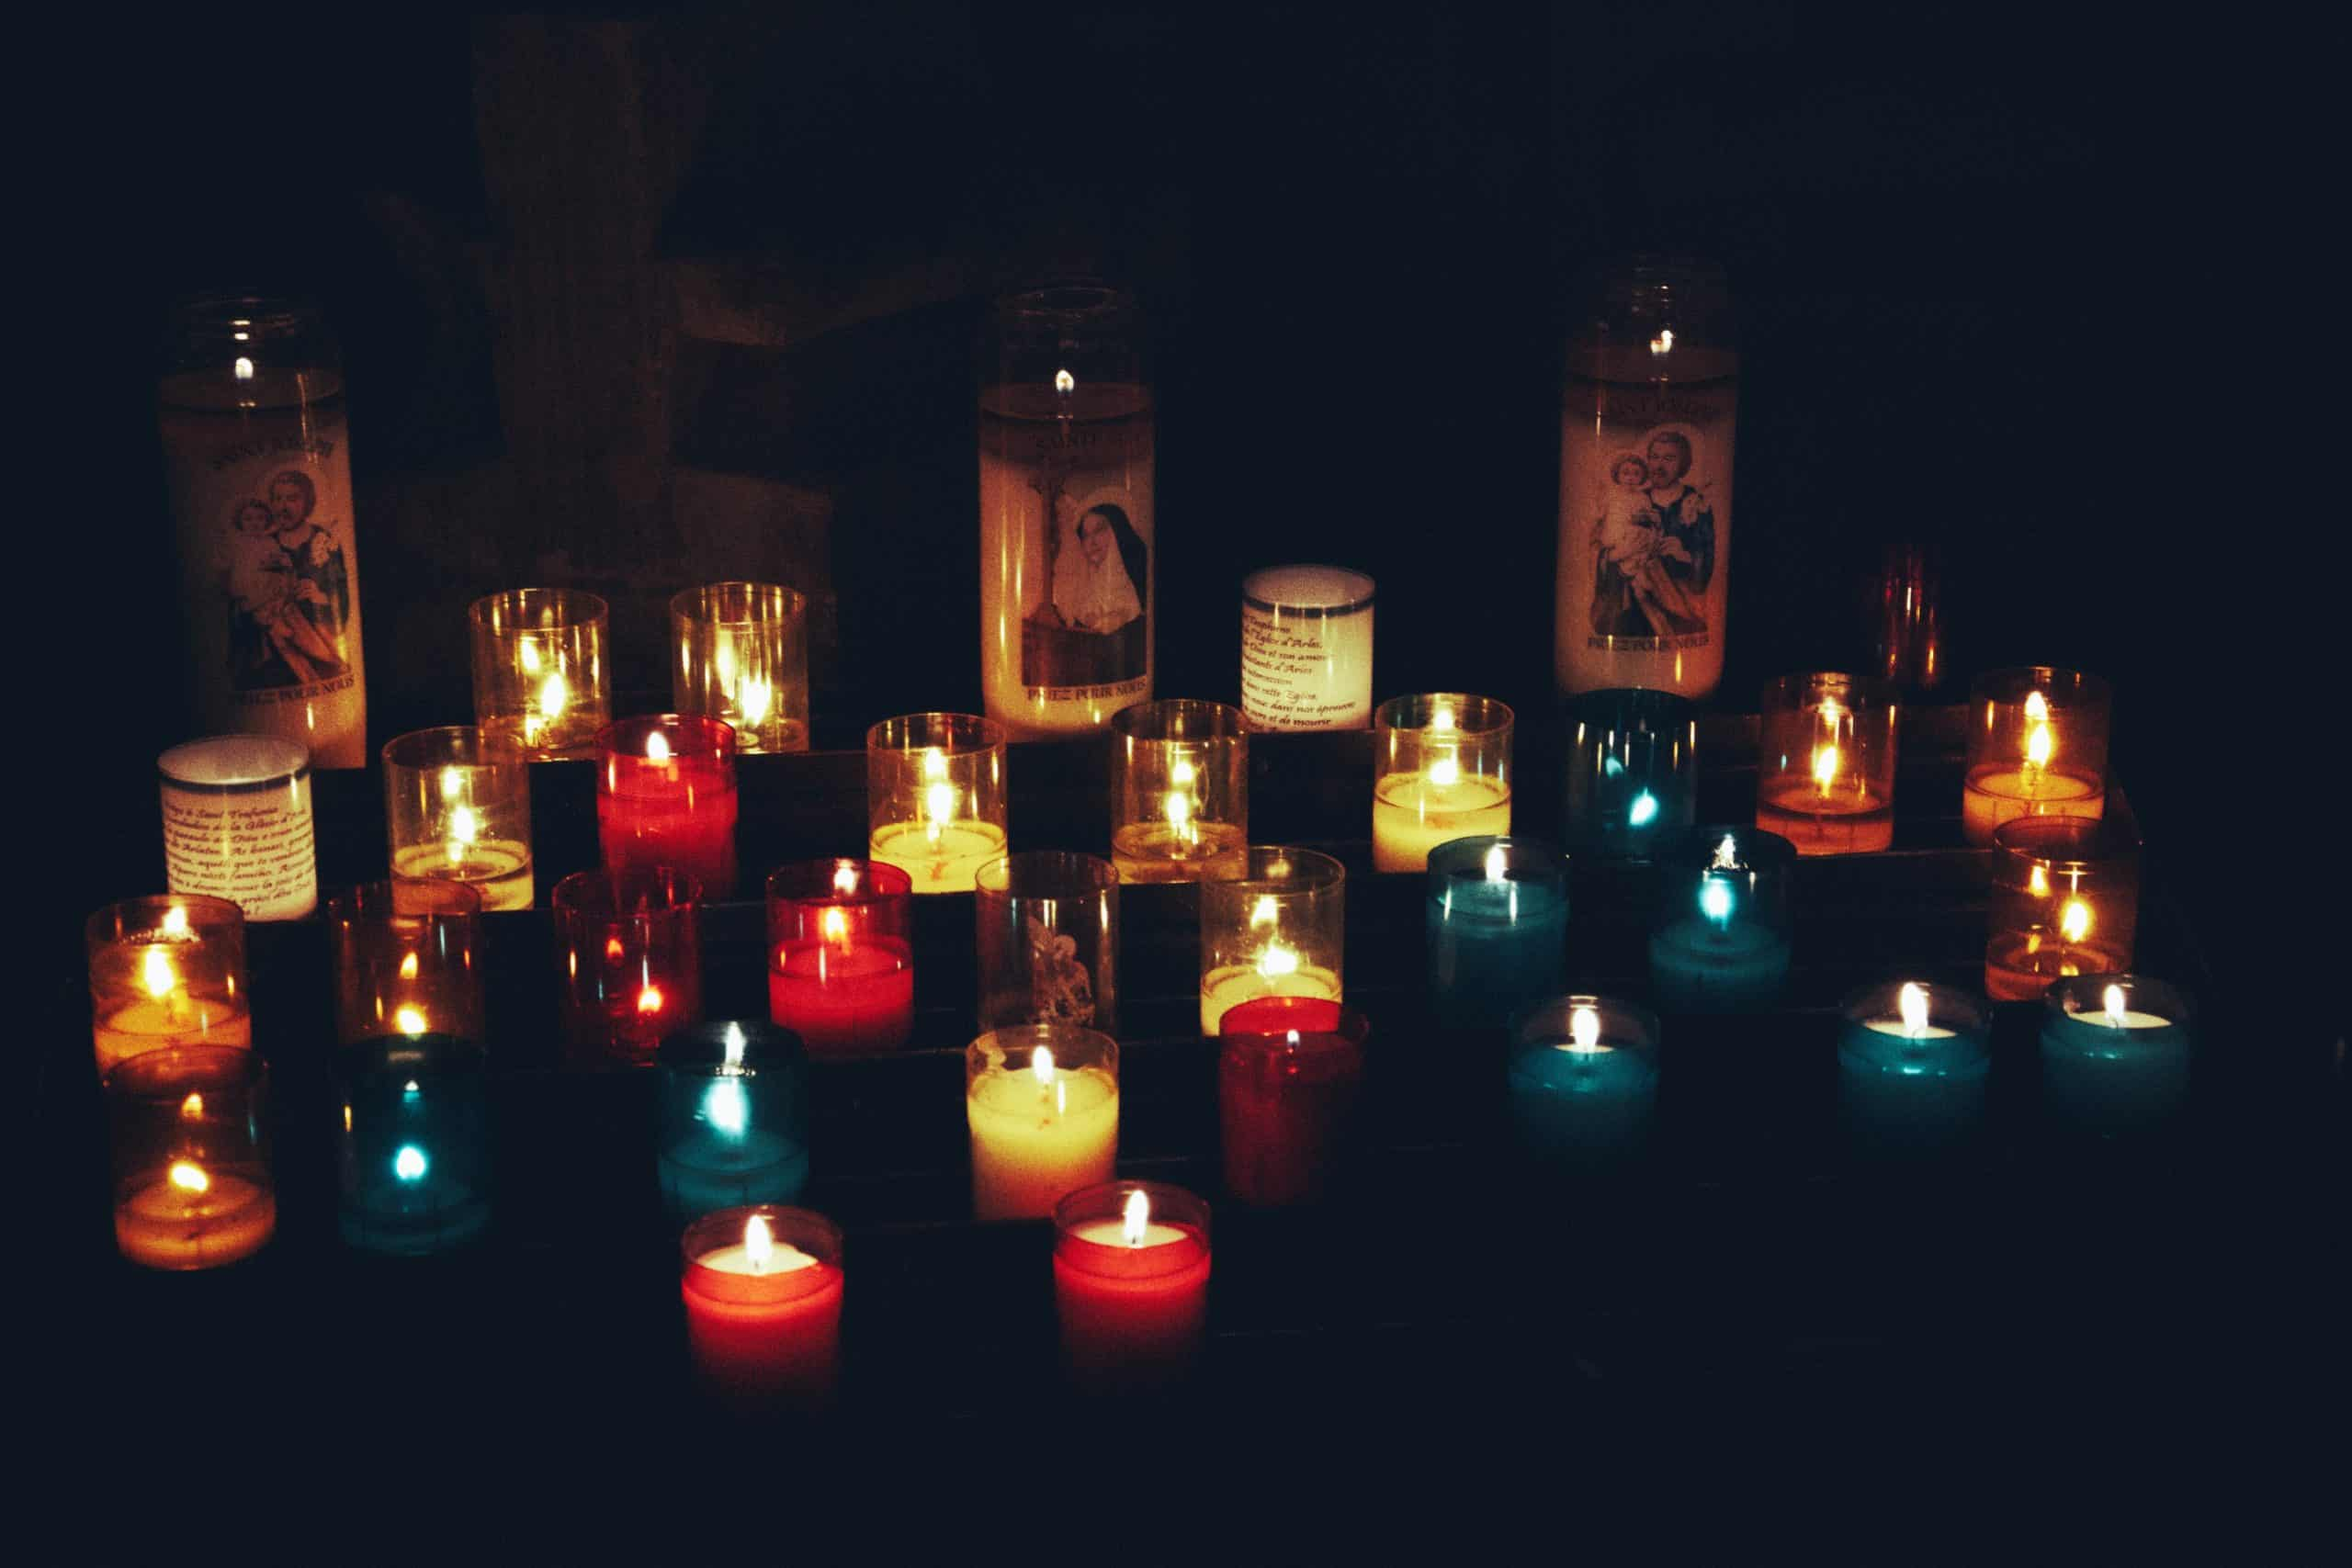 Best Candle Making course tutorial class certification training online